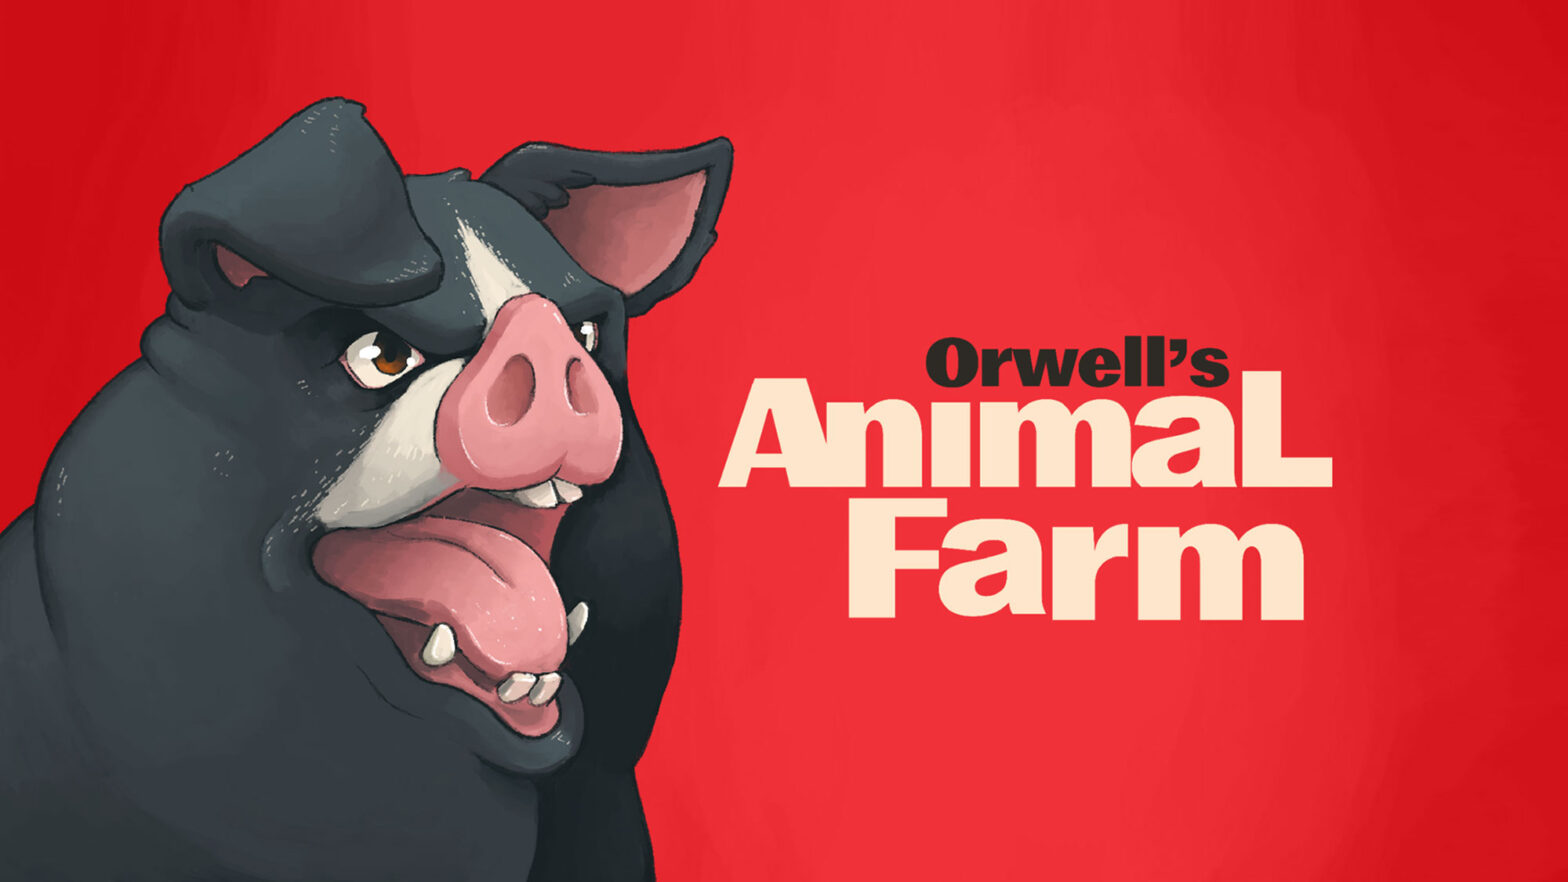 Orwell's Animal Farm PC and Mobile Video Game